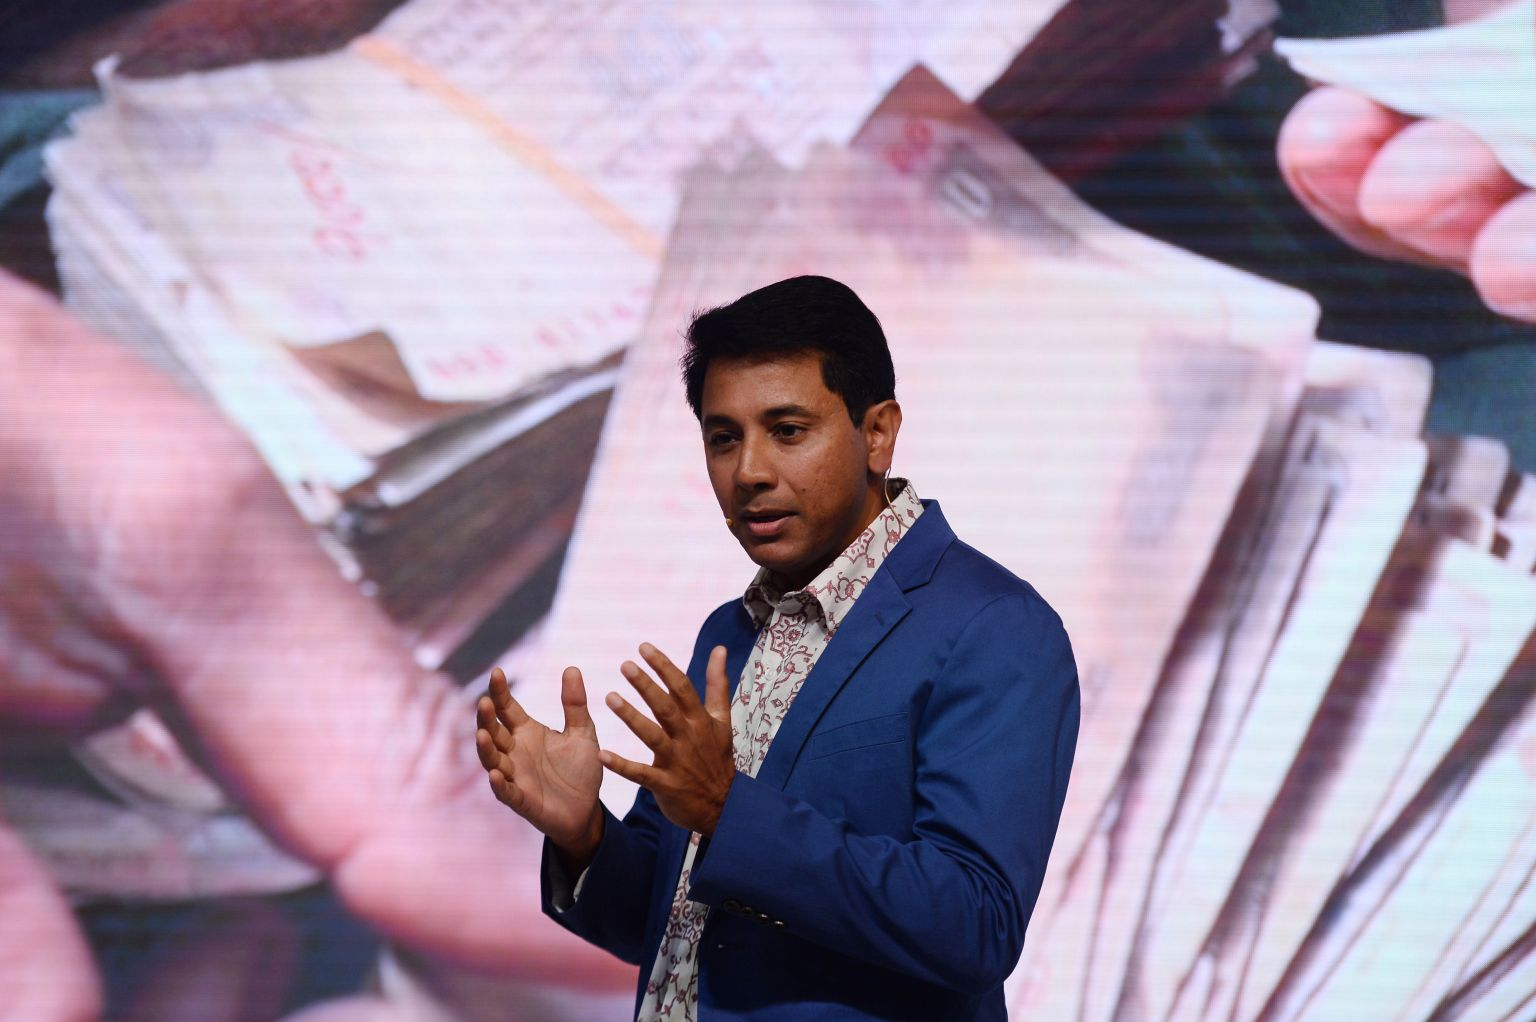 Mobile payments firms in India are now scrambling to make money After signing up hundreds of millions of users, startups switch to lending and lean on merchants in search of revenues Manish Singh@refsrc / 4:35 pm PDT • April 1, 2020